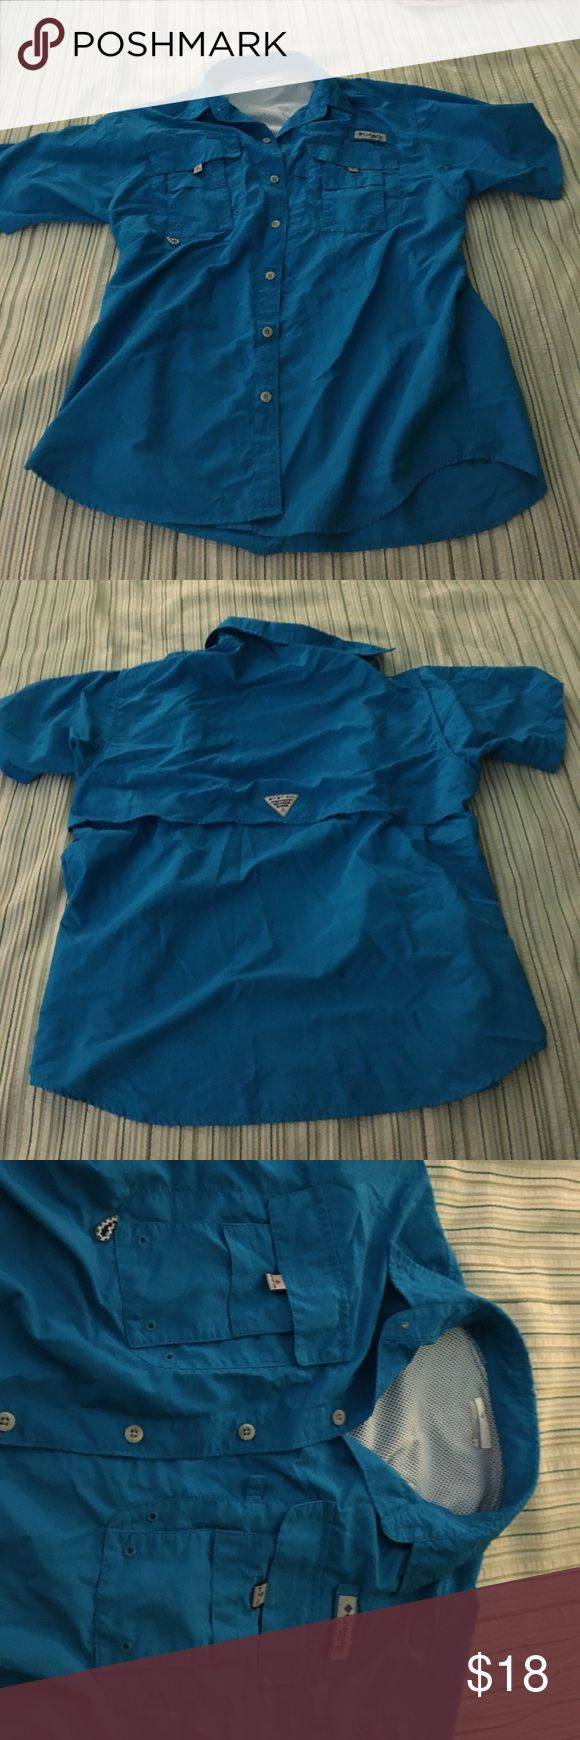 COLUMBIA PFG SHIRT NICE CONDITION COLUMBIA SHIRT. SIZE MEDIUM. HAS 2 POCKETS ALONG WITH BREATHING ON THE BACK. Columbia Shirts Casual Button Down Shirts